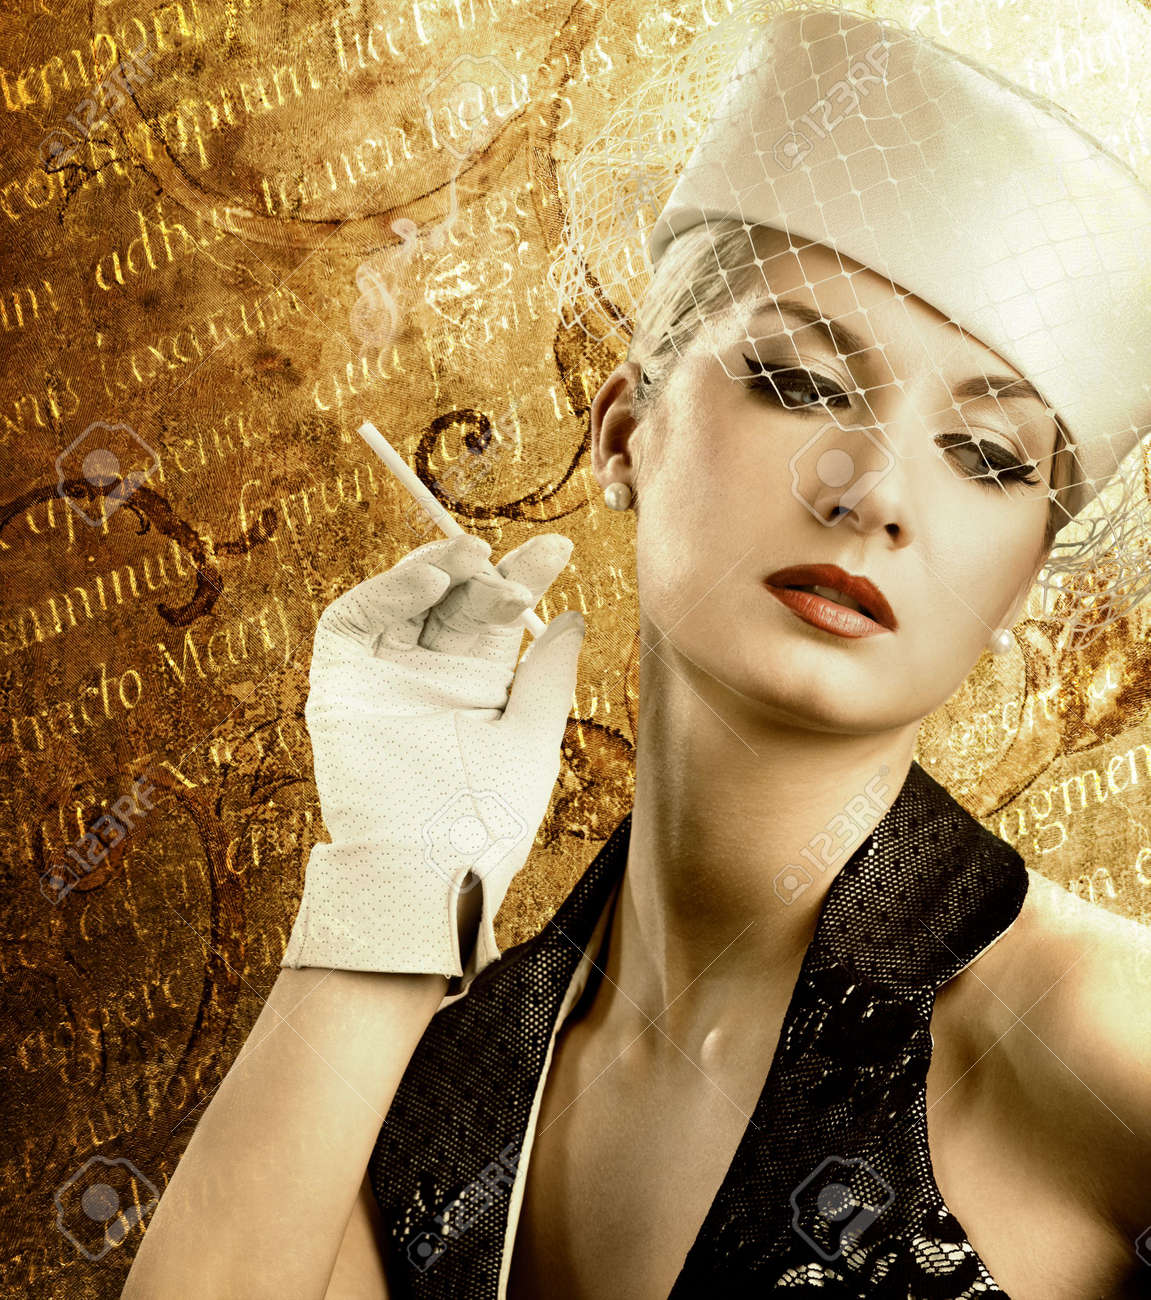 Beautiful smoking woman over abstract vintage background Stock Photo - 4644153